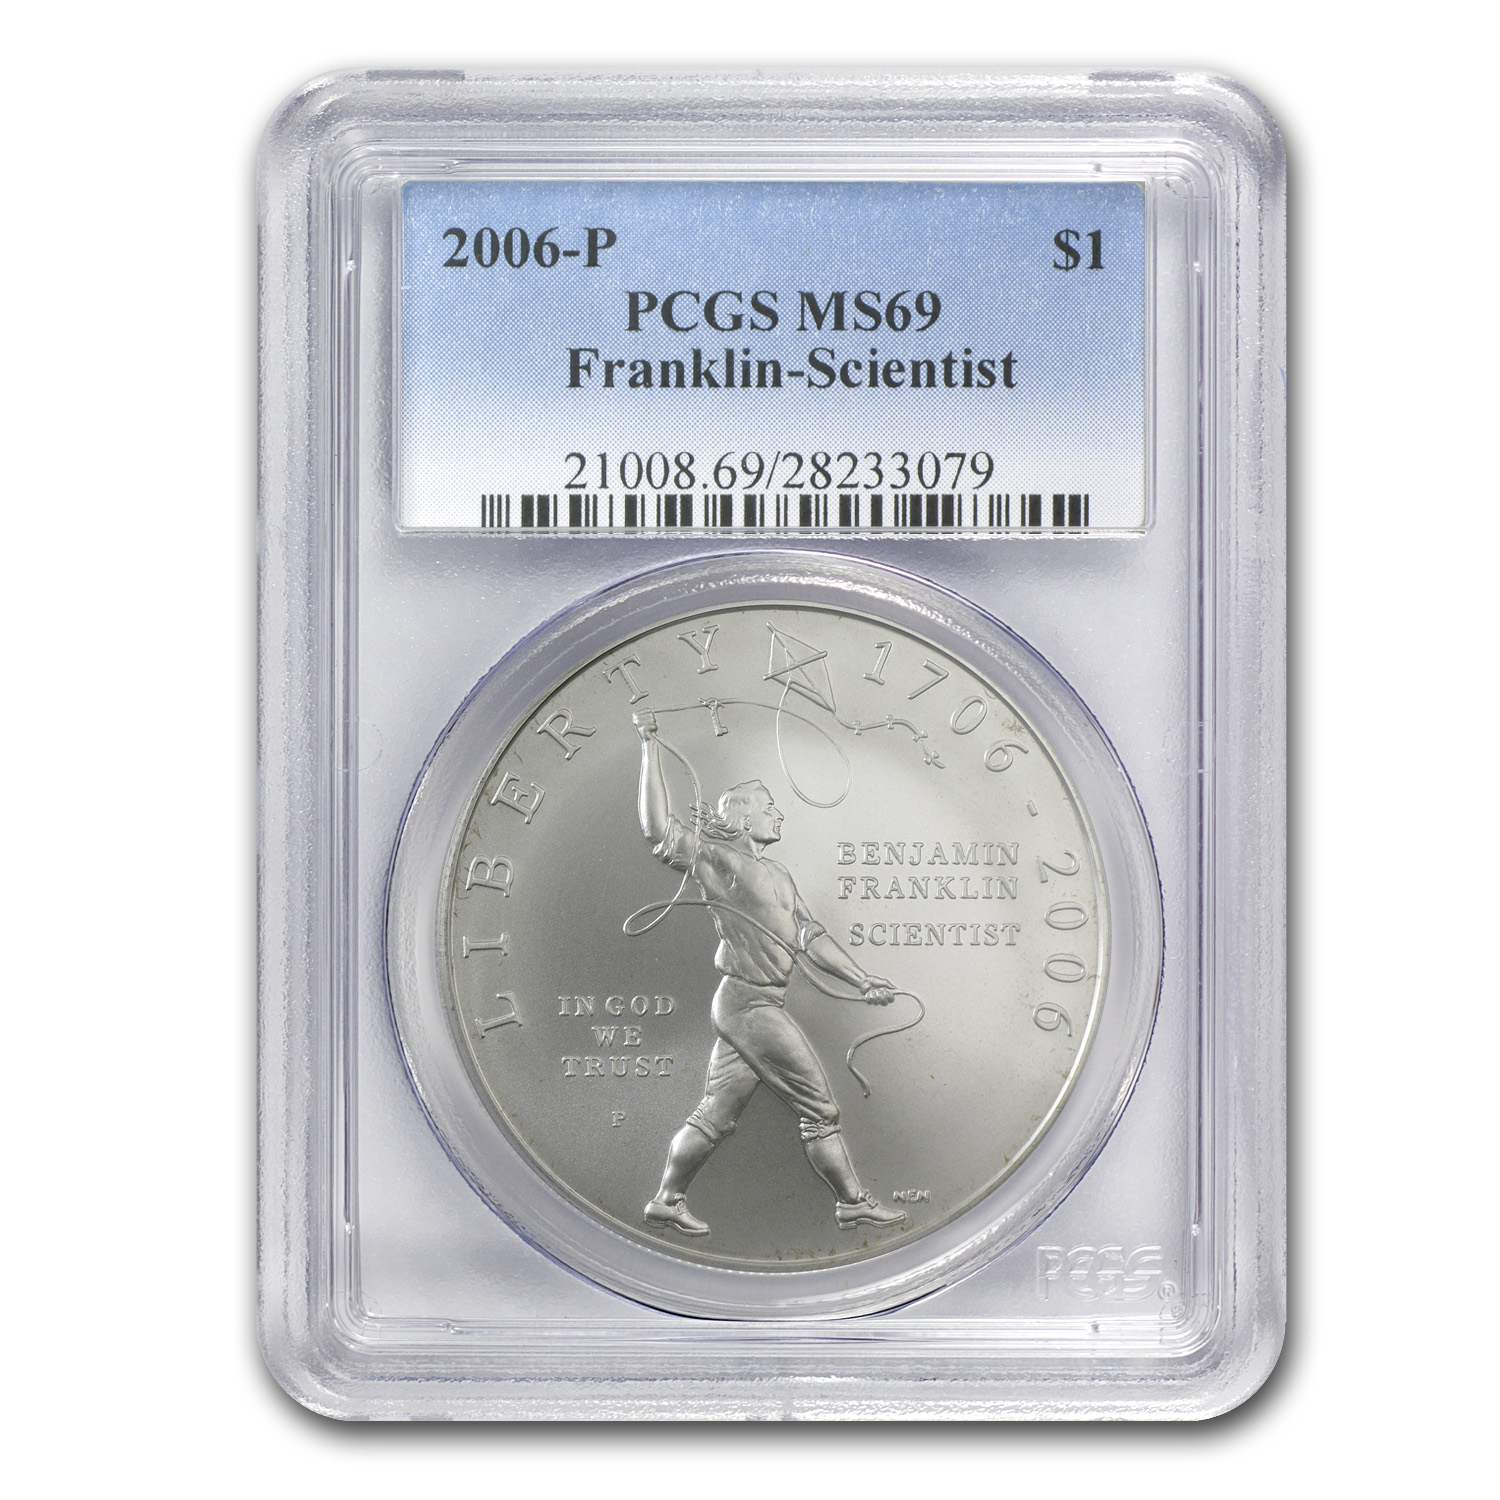 2006-P Ben Franklin Scientist $1 Silver Commemorative MS-69 PCGS